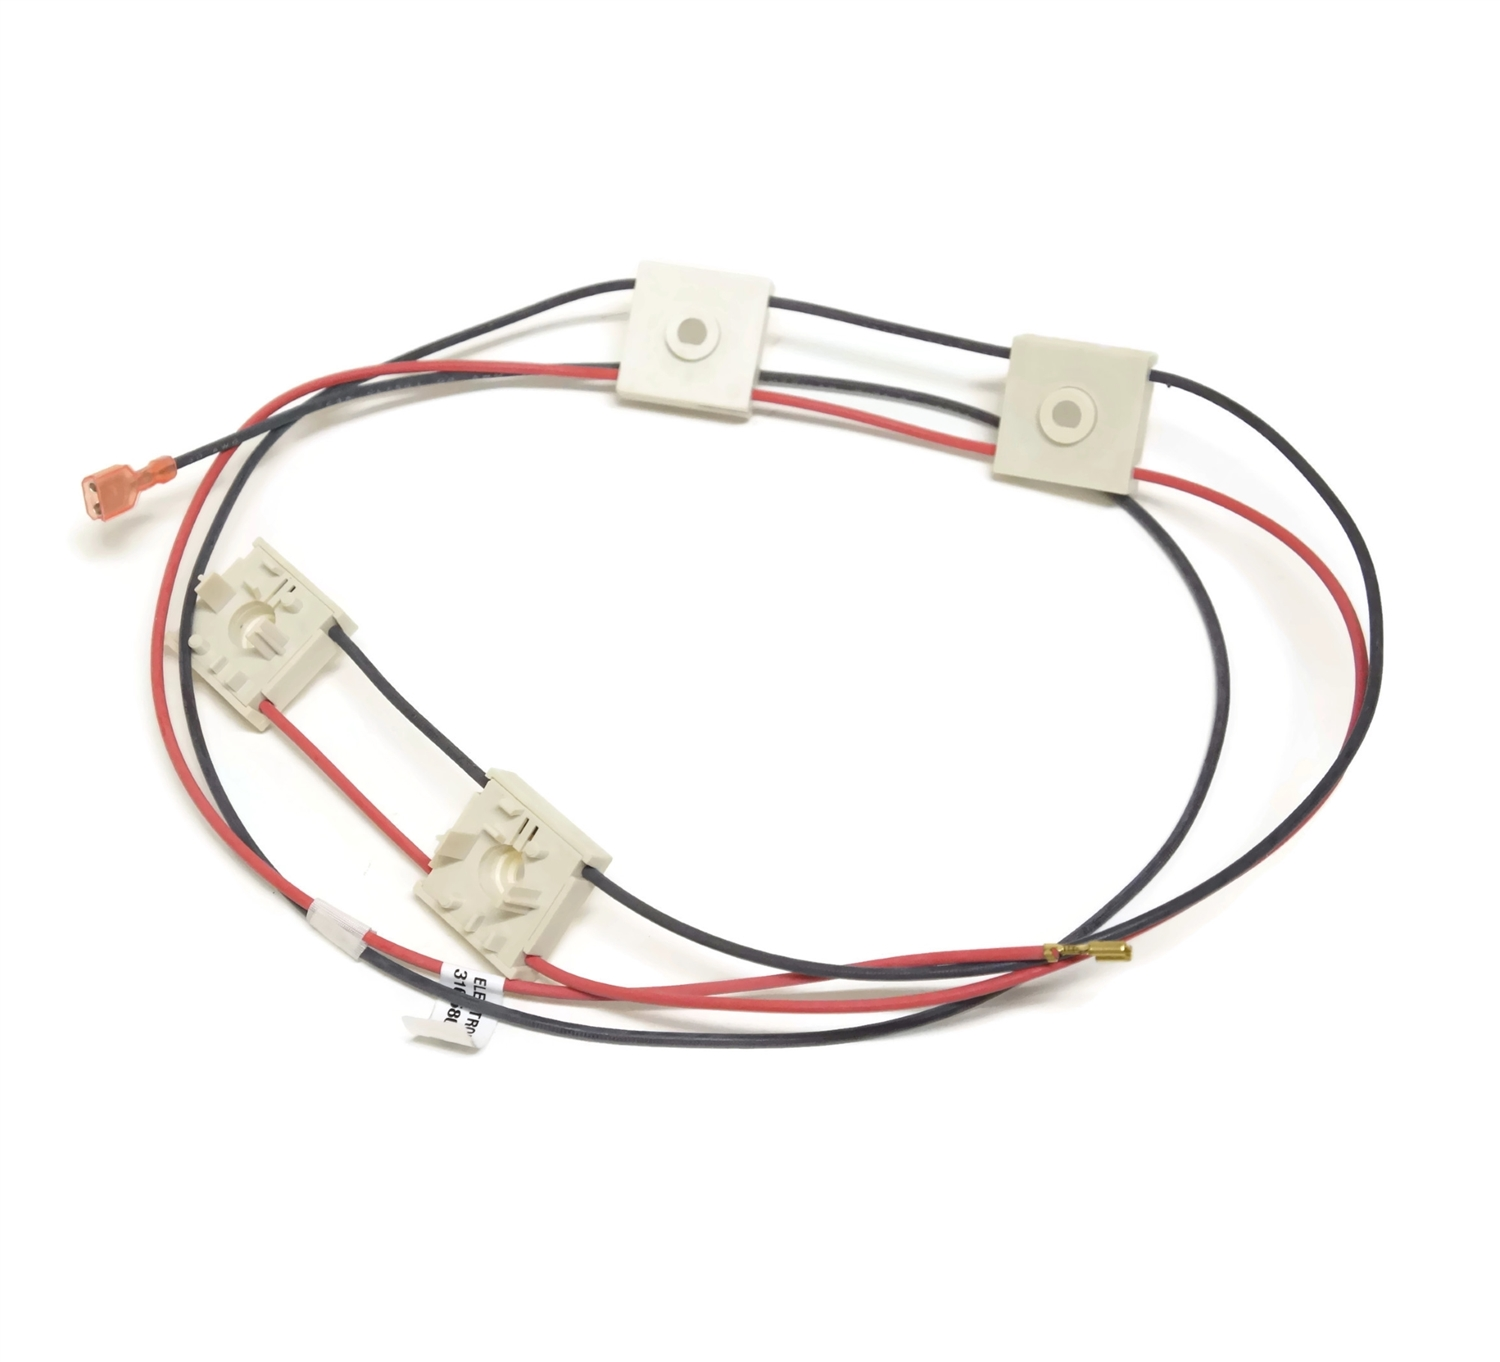 Frigidaire 316580611 Range Ignitor Spark Switch Harness on